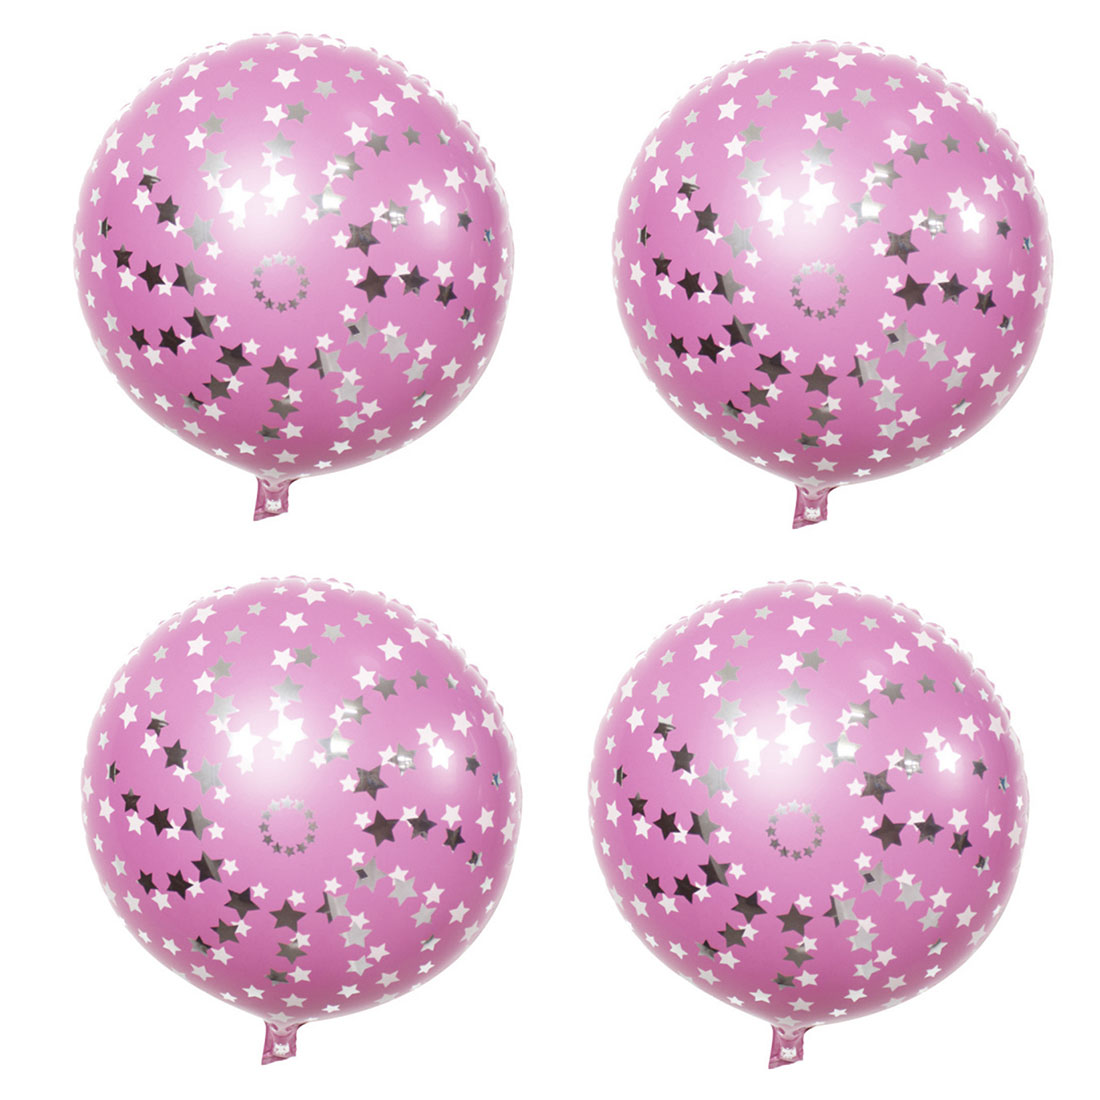 Home Birthday Wedding Foil Star Pattern Round Inflation Balloon Pink 18 Inches 4pcs